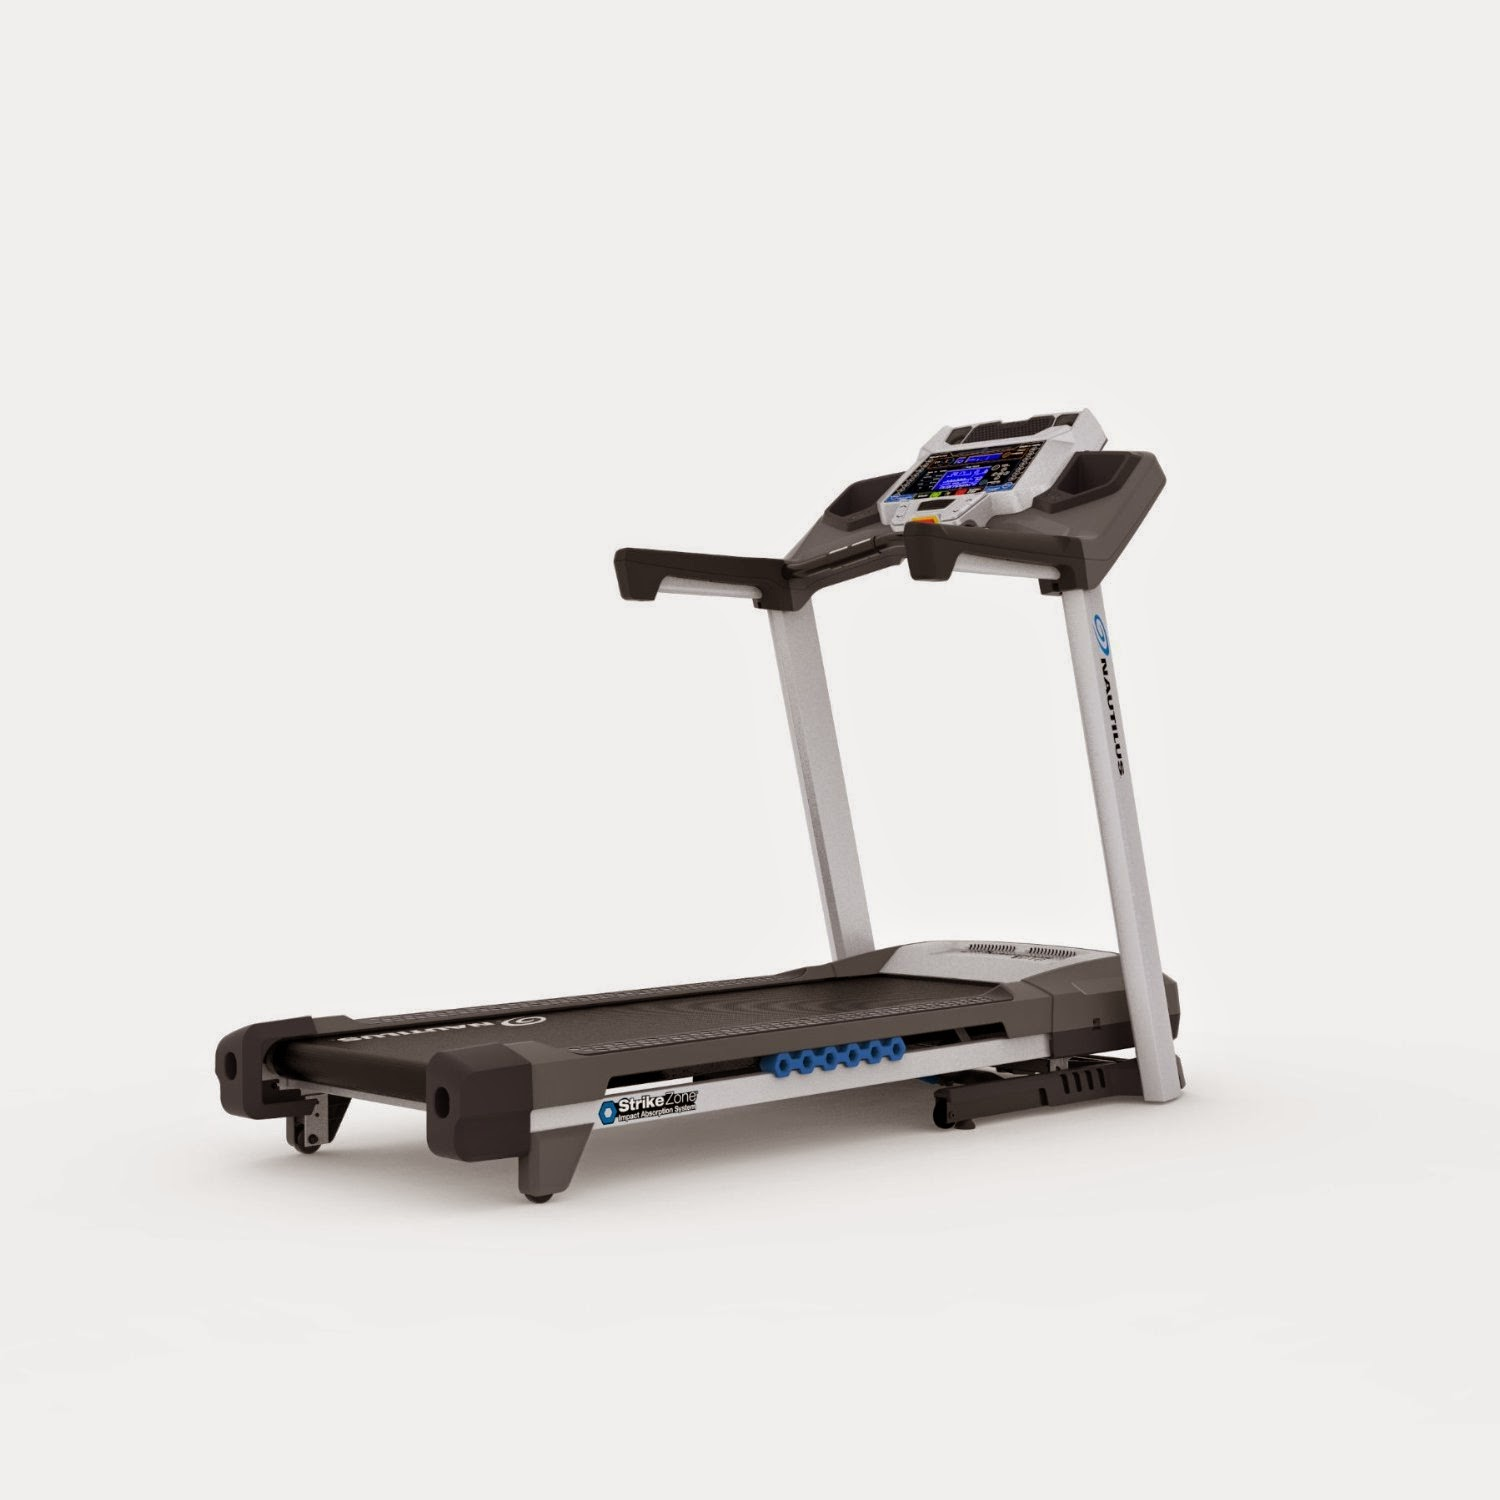 Nautilus T616 Treadmill, review plus compare with T614, folding deck, cushioned deck, dual blue backlit LCD display, 3 CHP, 0-12 MPH, 0-15% incline, 26 programs, acoustic chambered speakers, MP3 input, USB charging port & data export, goal tracking